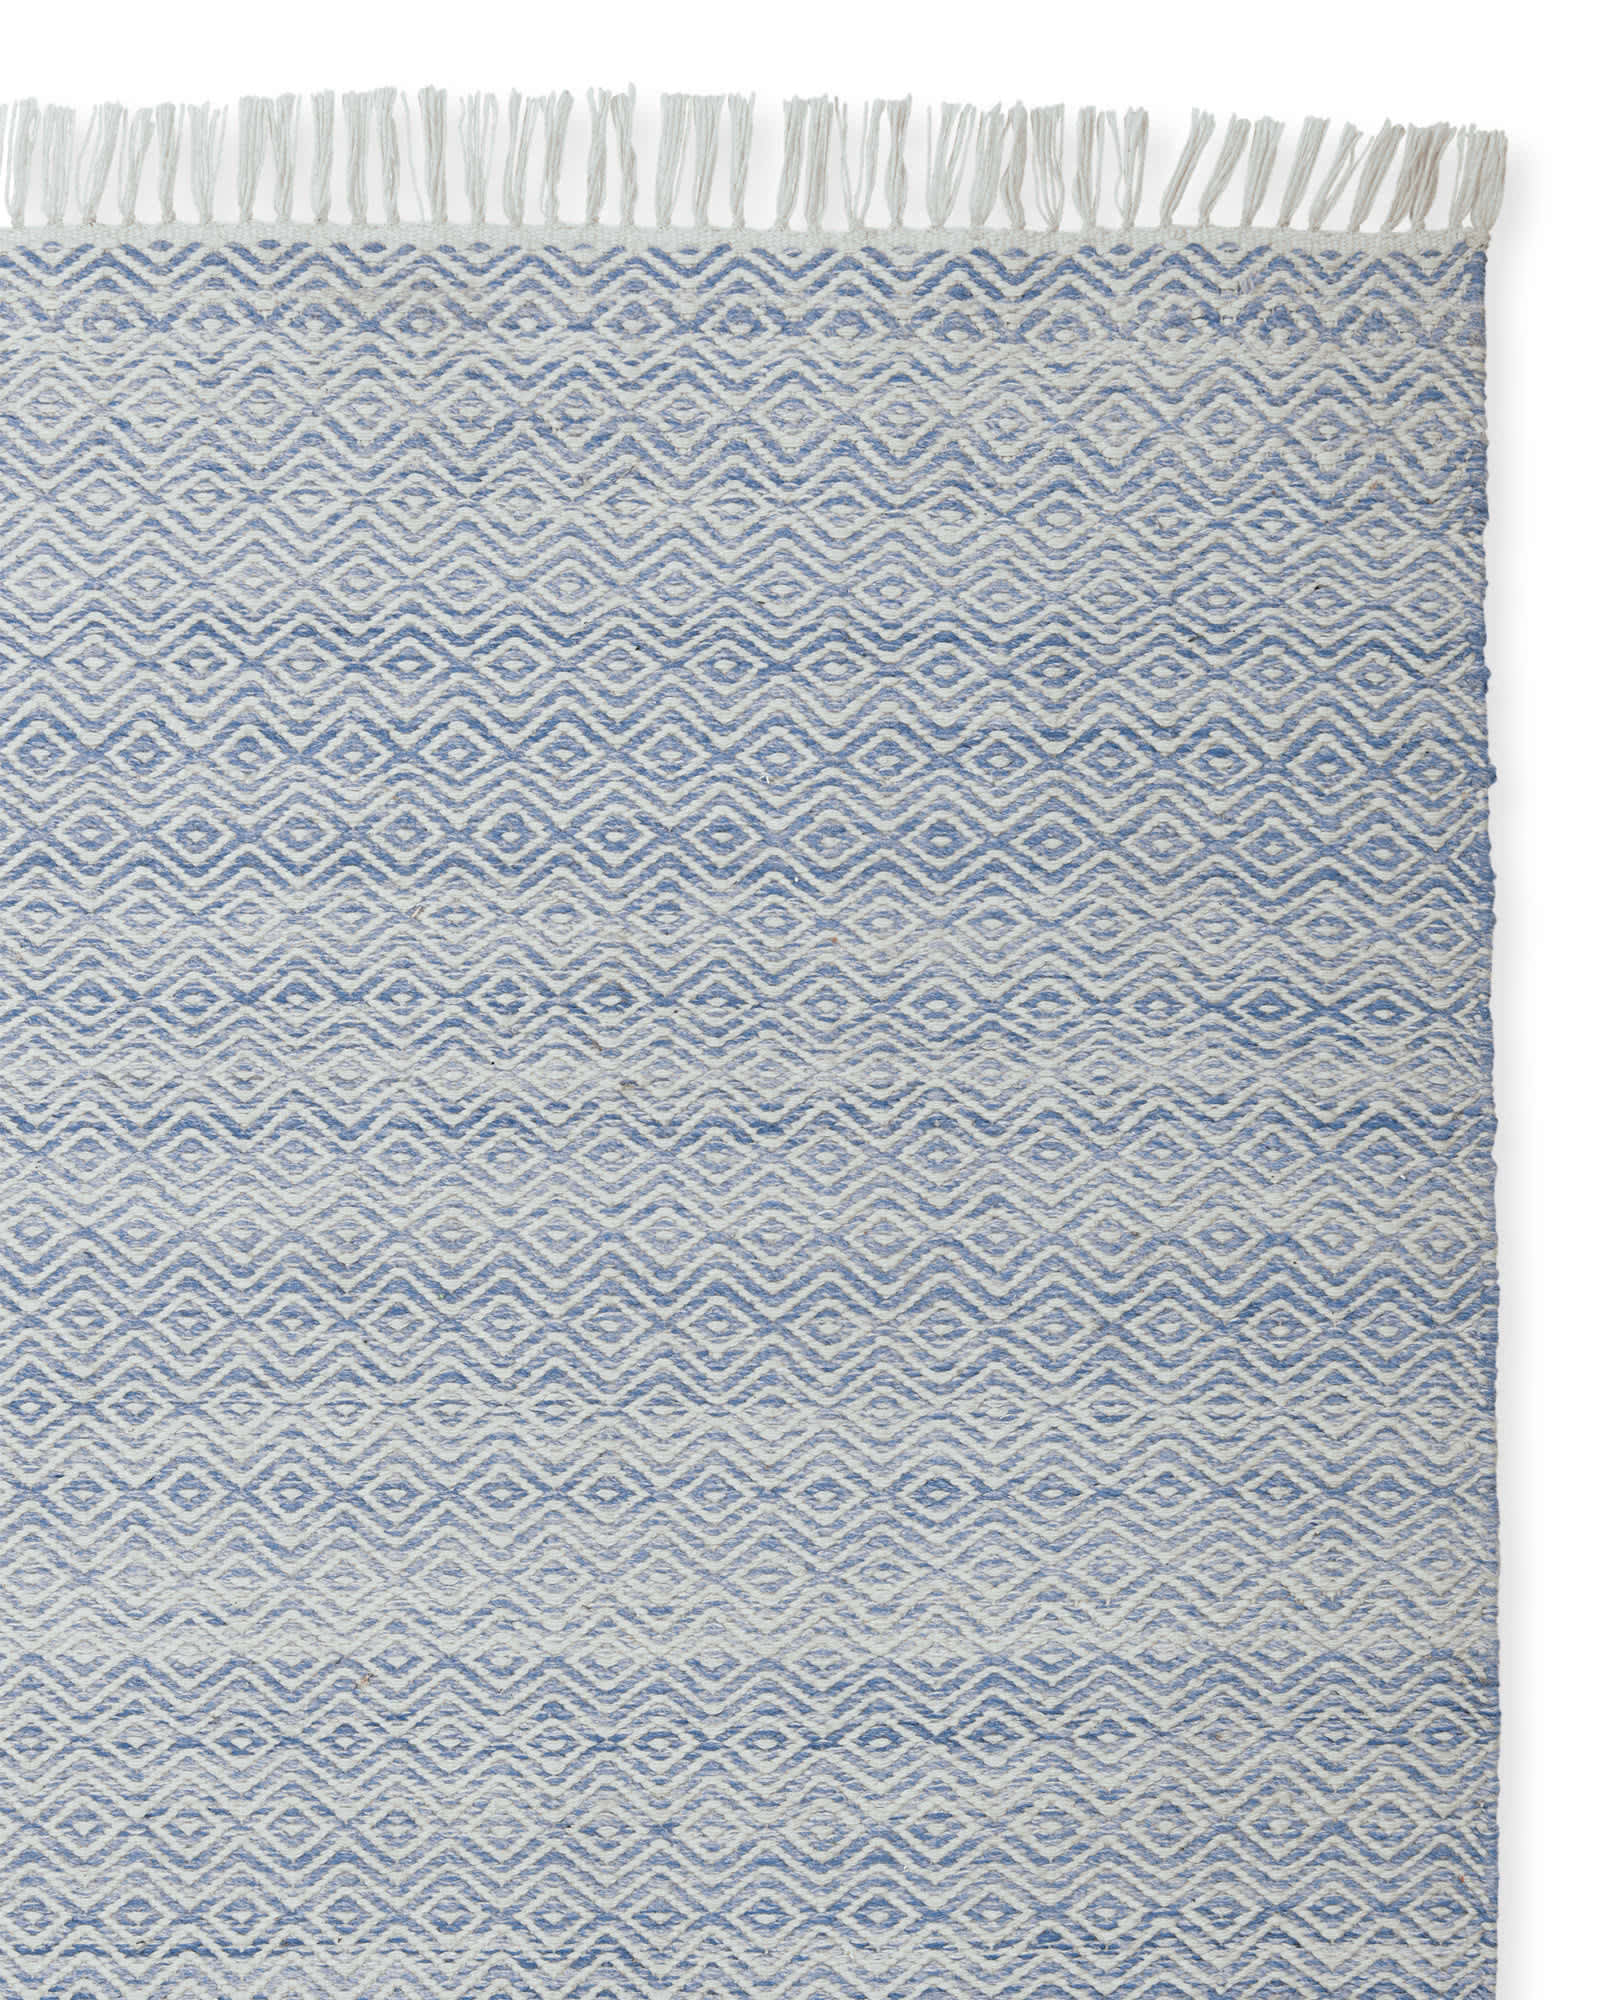 Cheap Outdoor Rugs You Can Use Inside Or Outside